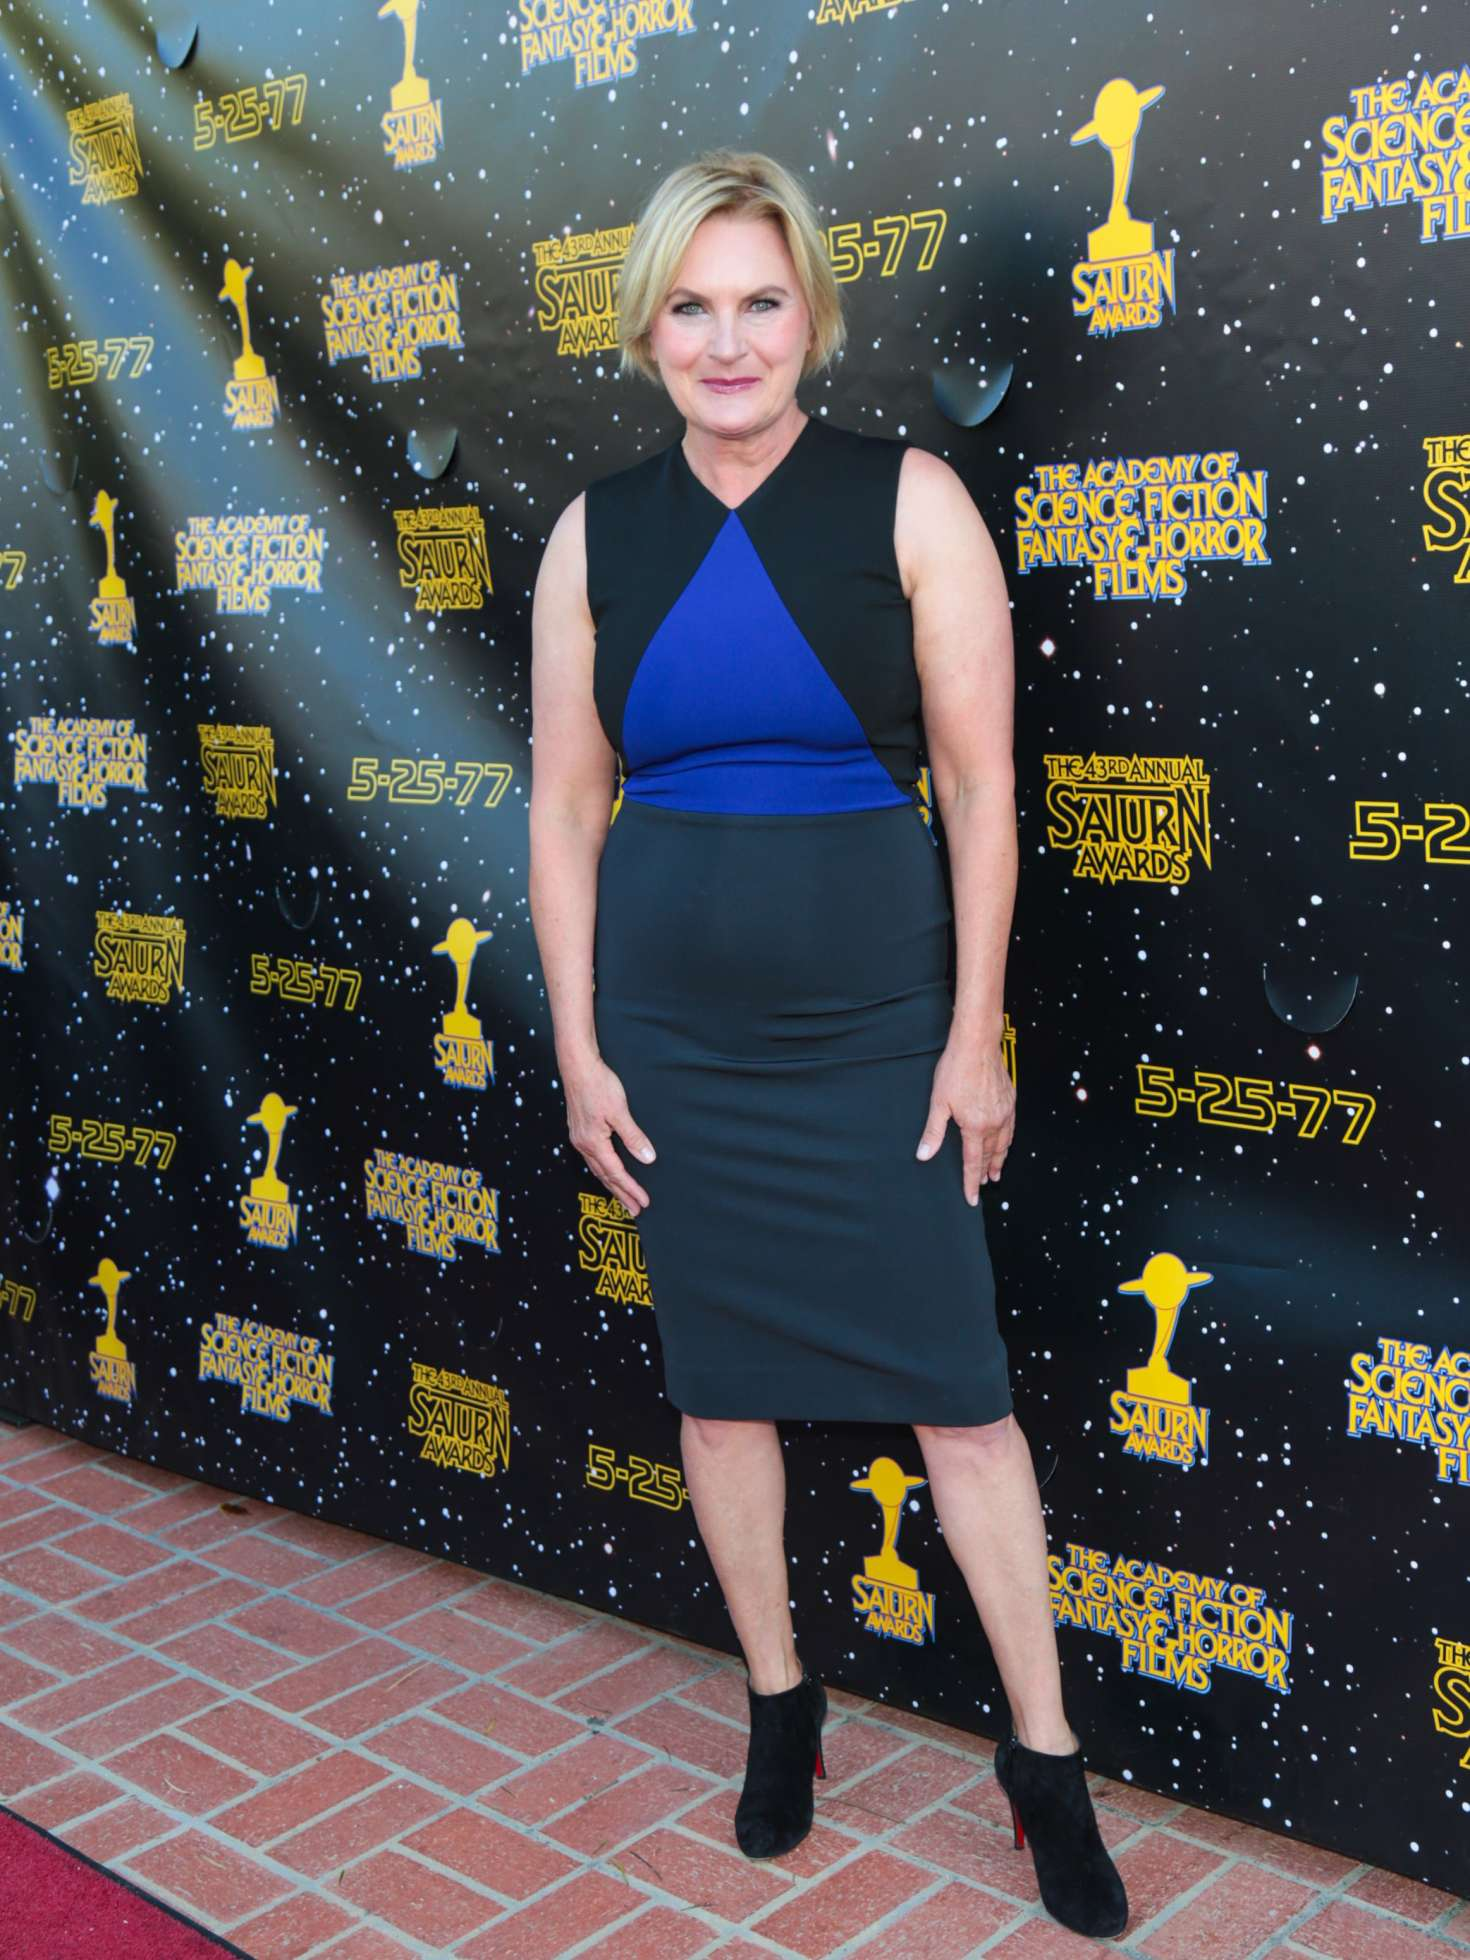 Denise Crosby Denise Crosby new images